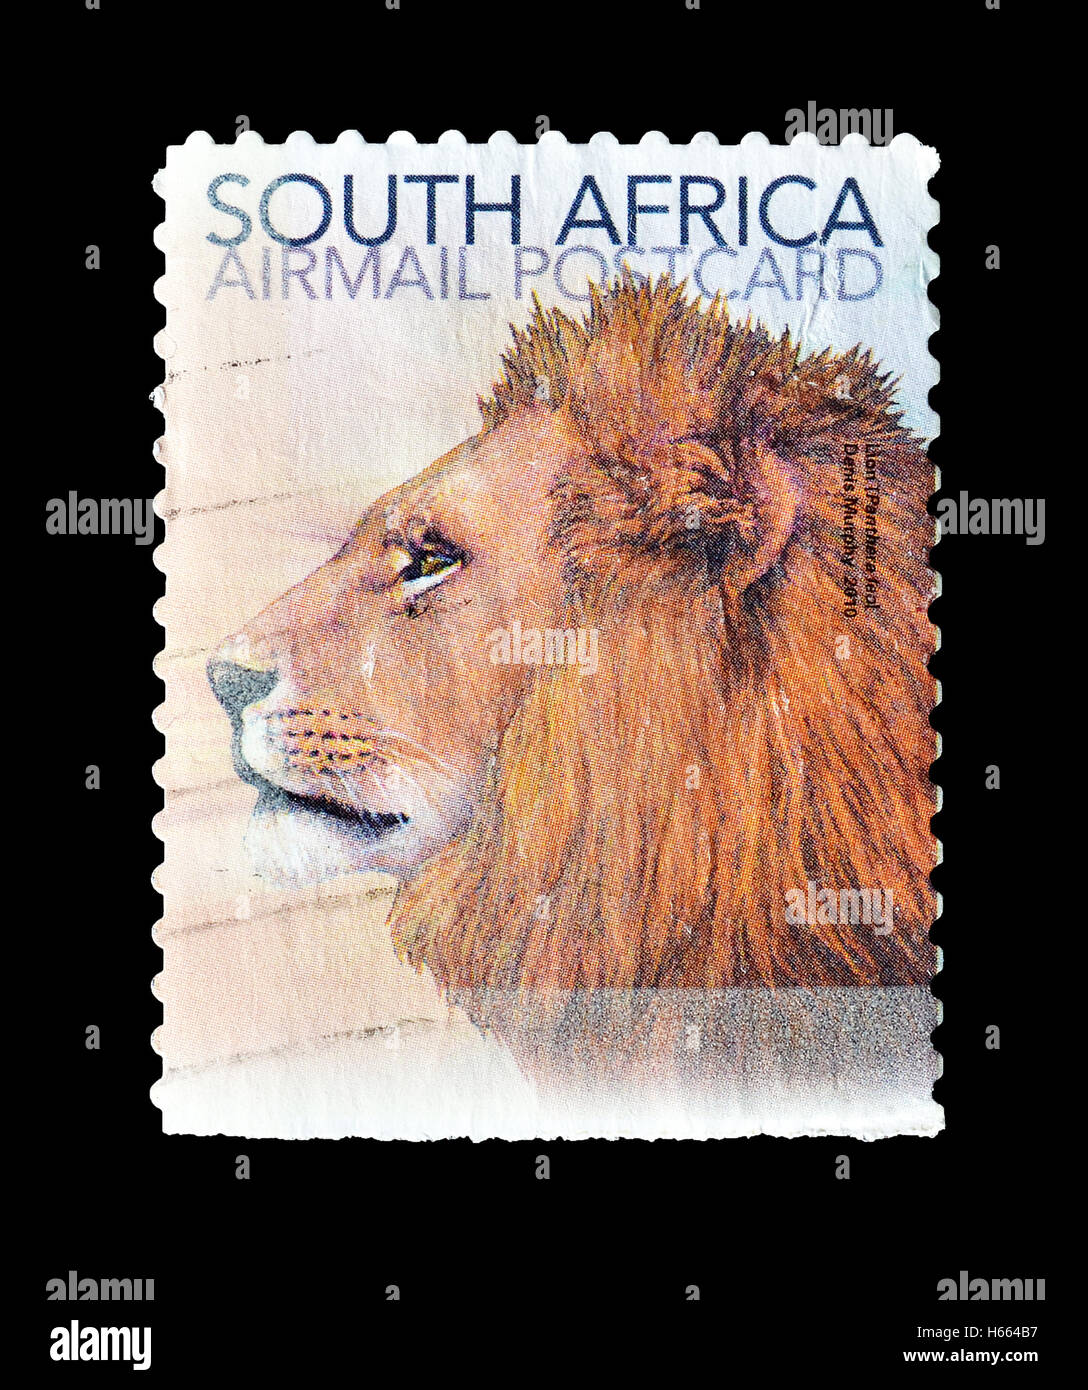 South Africa stamp 2010 - Stock Image